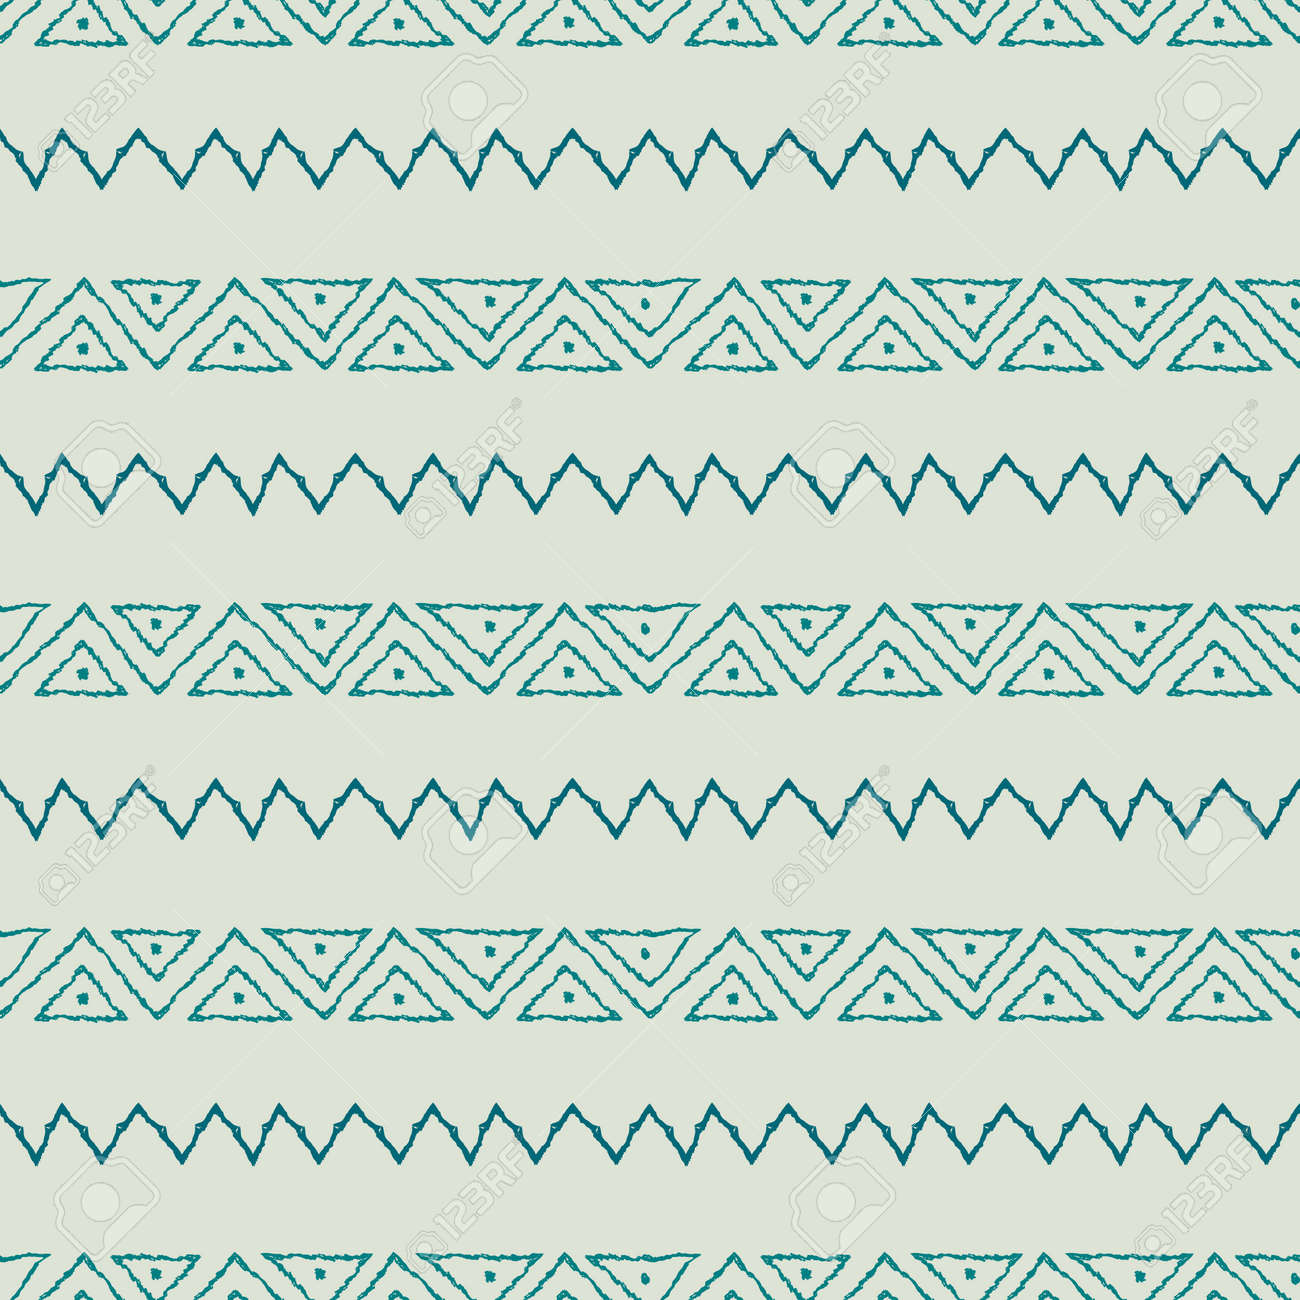 Seamless pattern with geometric elements in tribal style. Prehistoric drawings. - 168550204